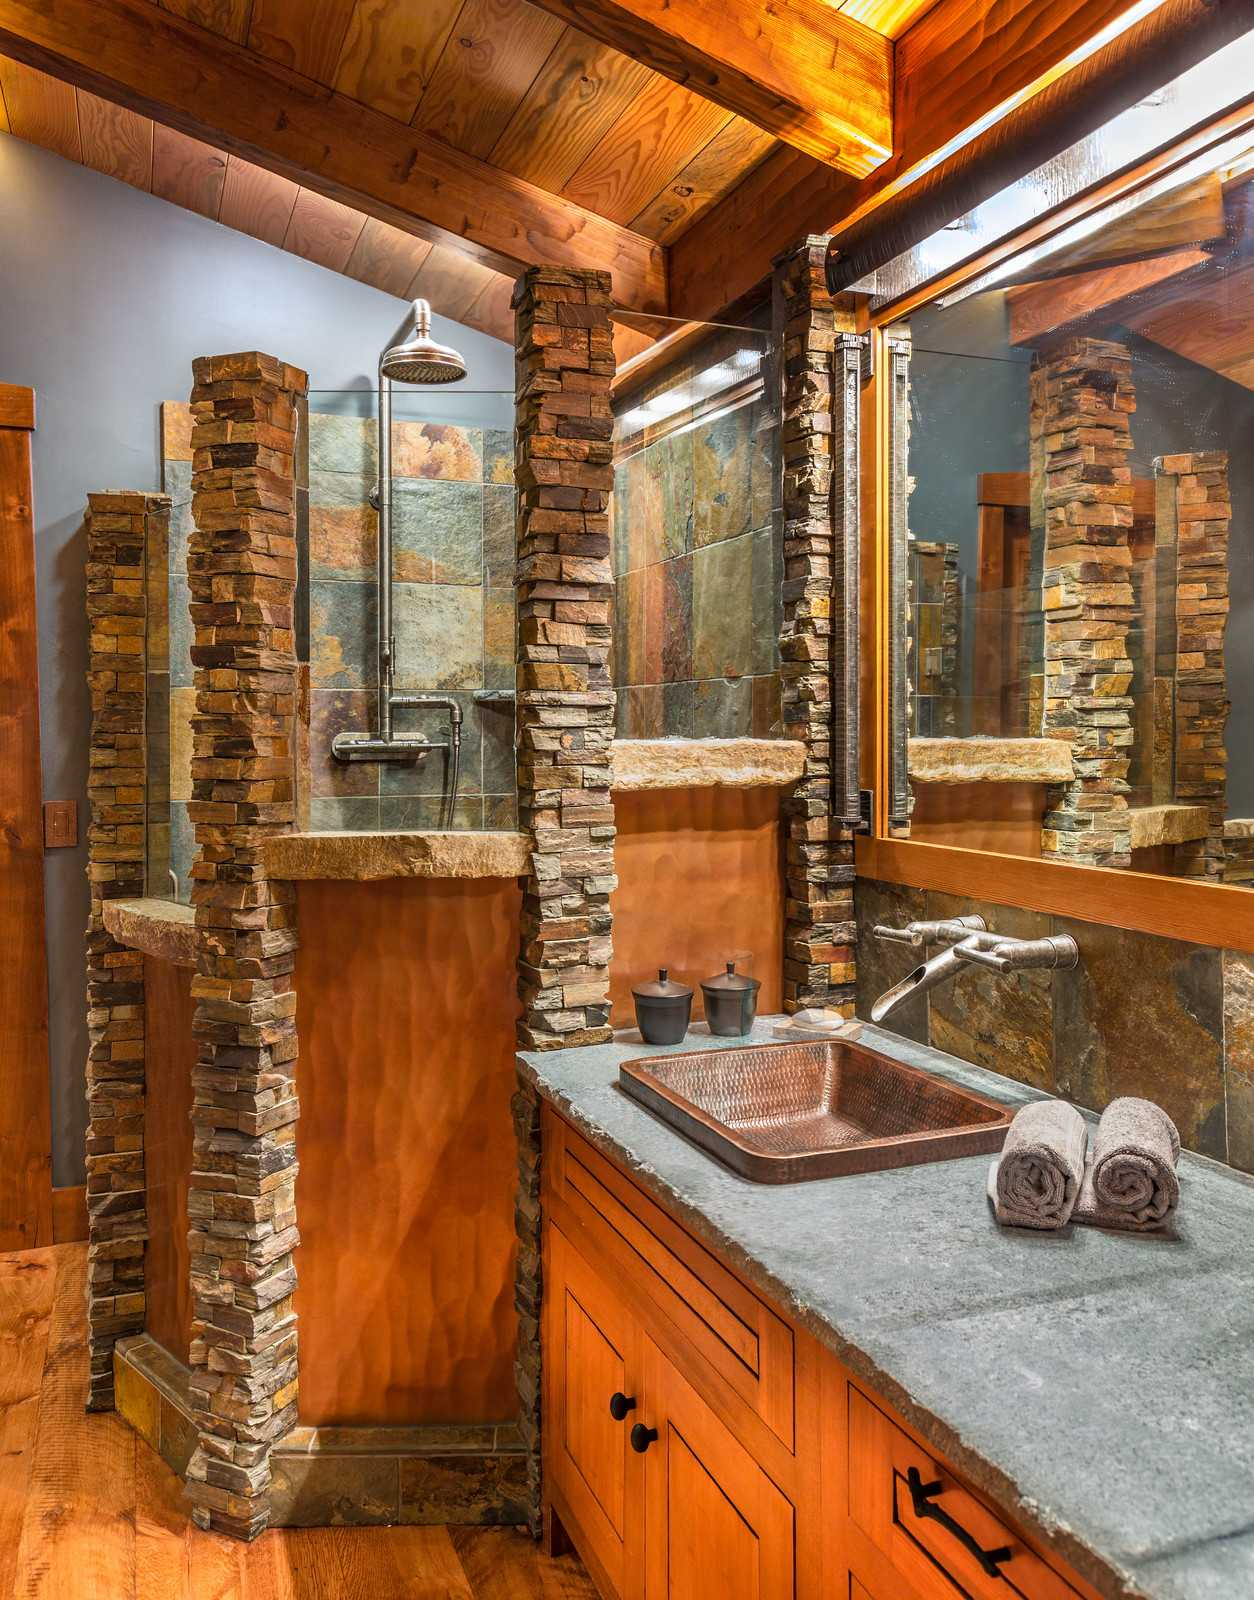 16 fantastic rustic bathroom designs that will take your breath away. Black Bedroom Furniture Sets. Home Design Ideas